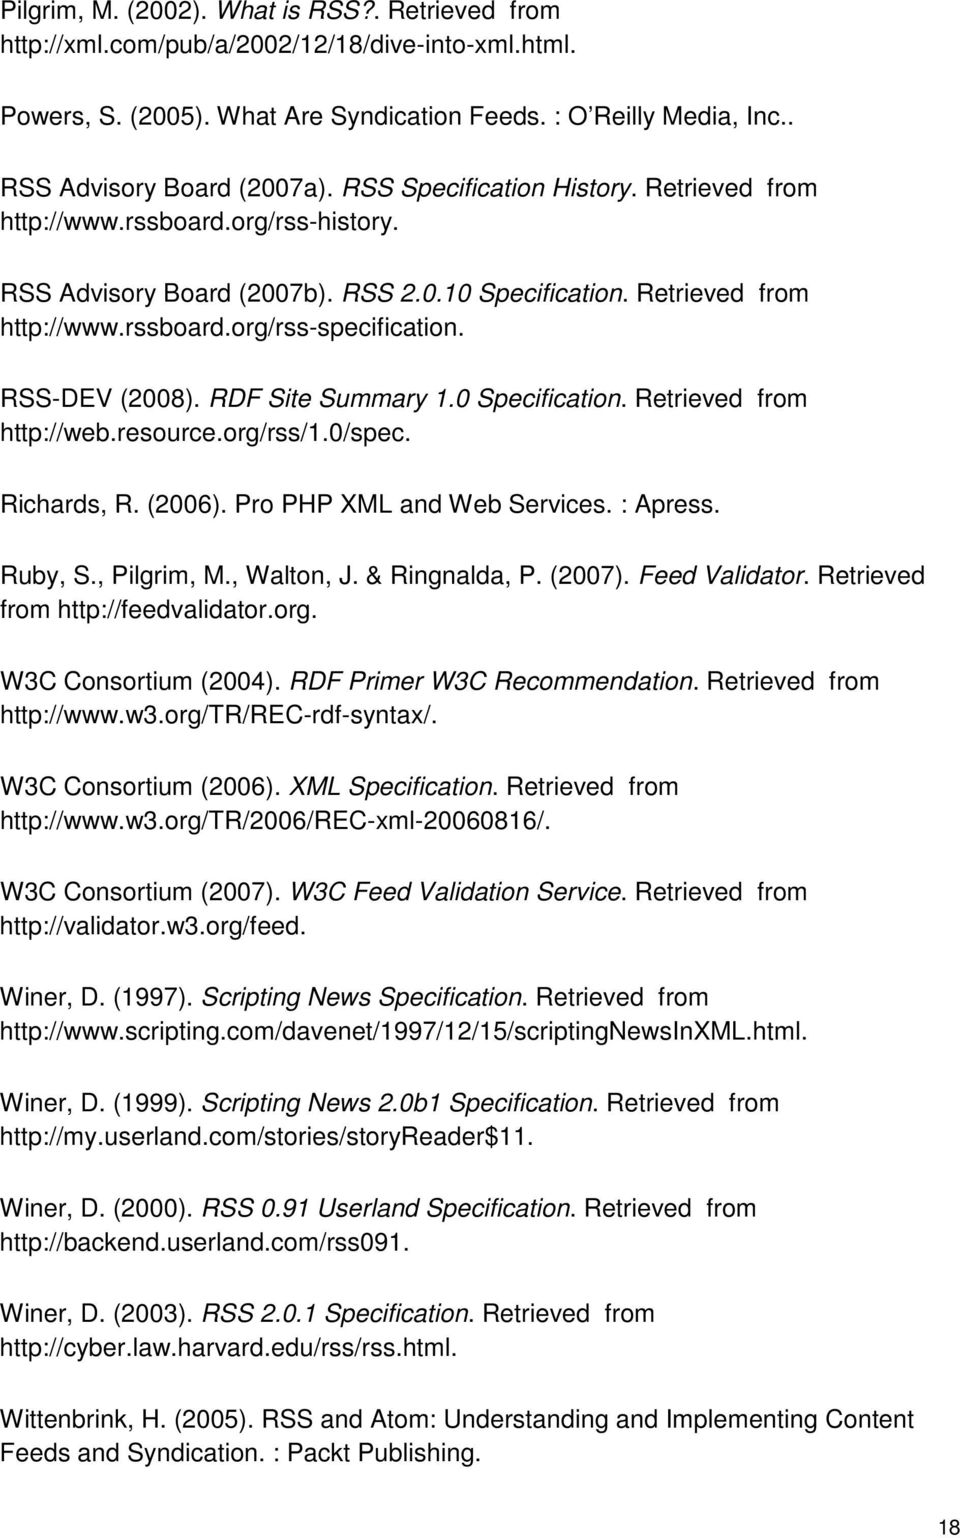 RSS-DEV (2008). RDF Site Summary 1.0 Specification. Retrieved from http://web.resource.org/rss/1.0/spec. Richards, R. (2006). Pro PHP XML and Web Services. : Apress. Ruby, S., Pilgrim, M., Walton, J.